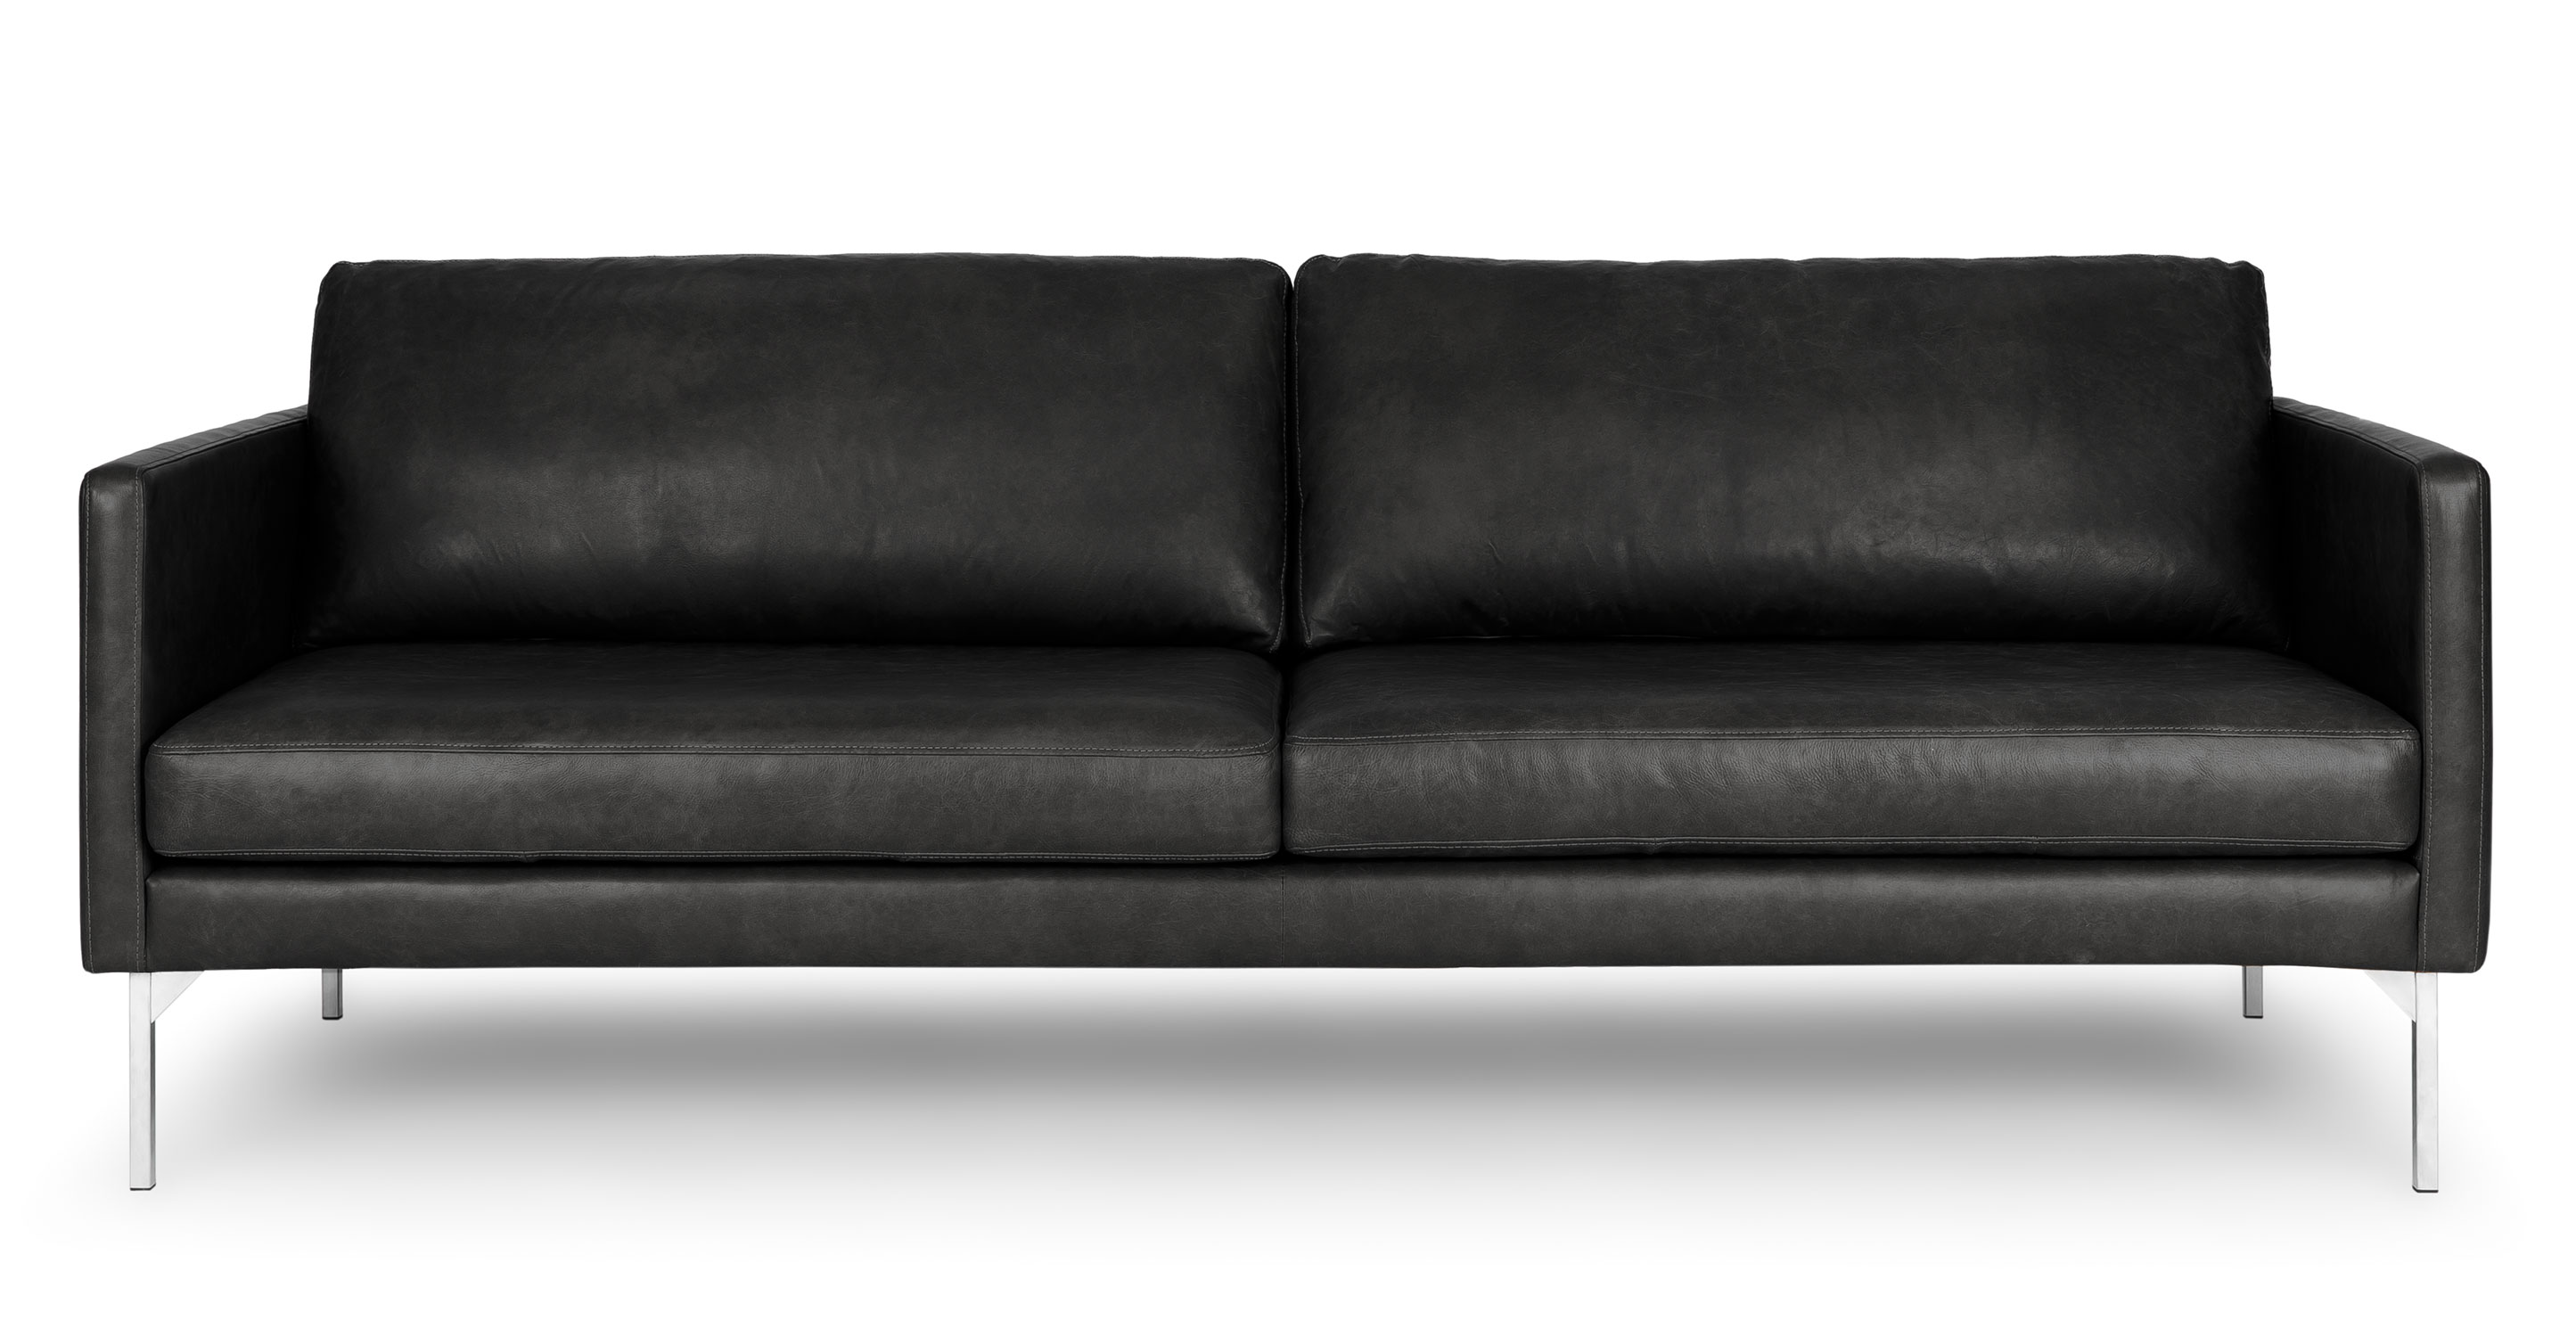 Echo Oxford Black Sofa Sofas Article Modern Mid